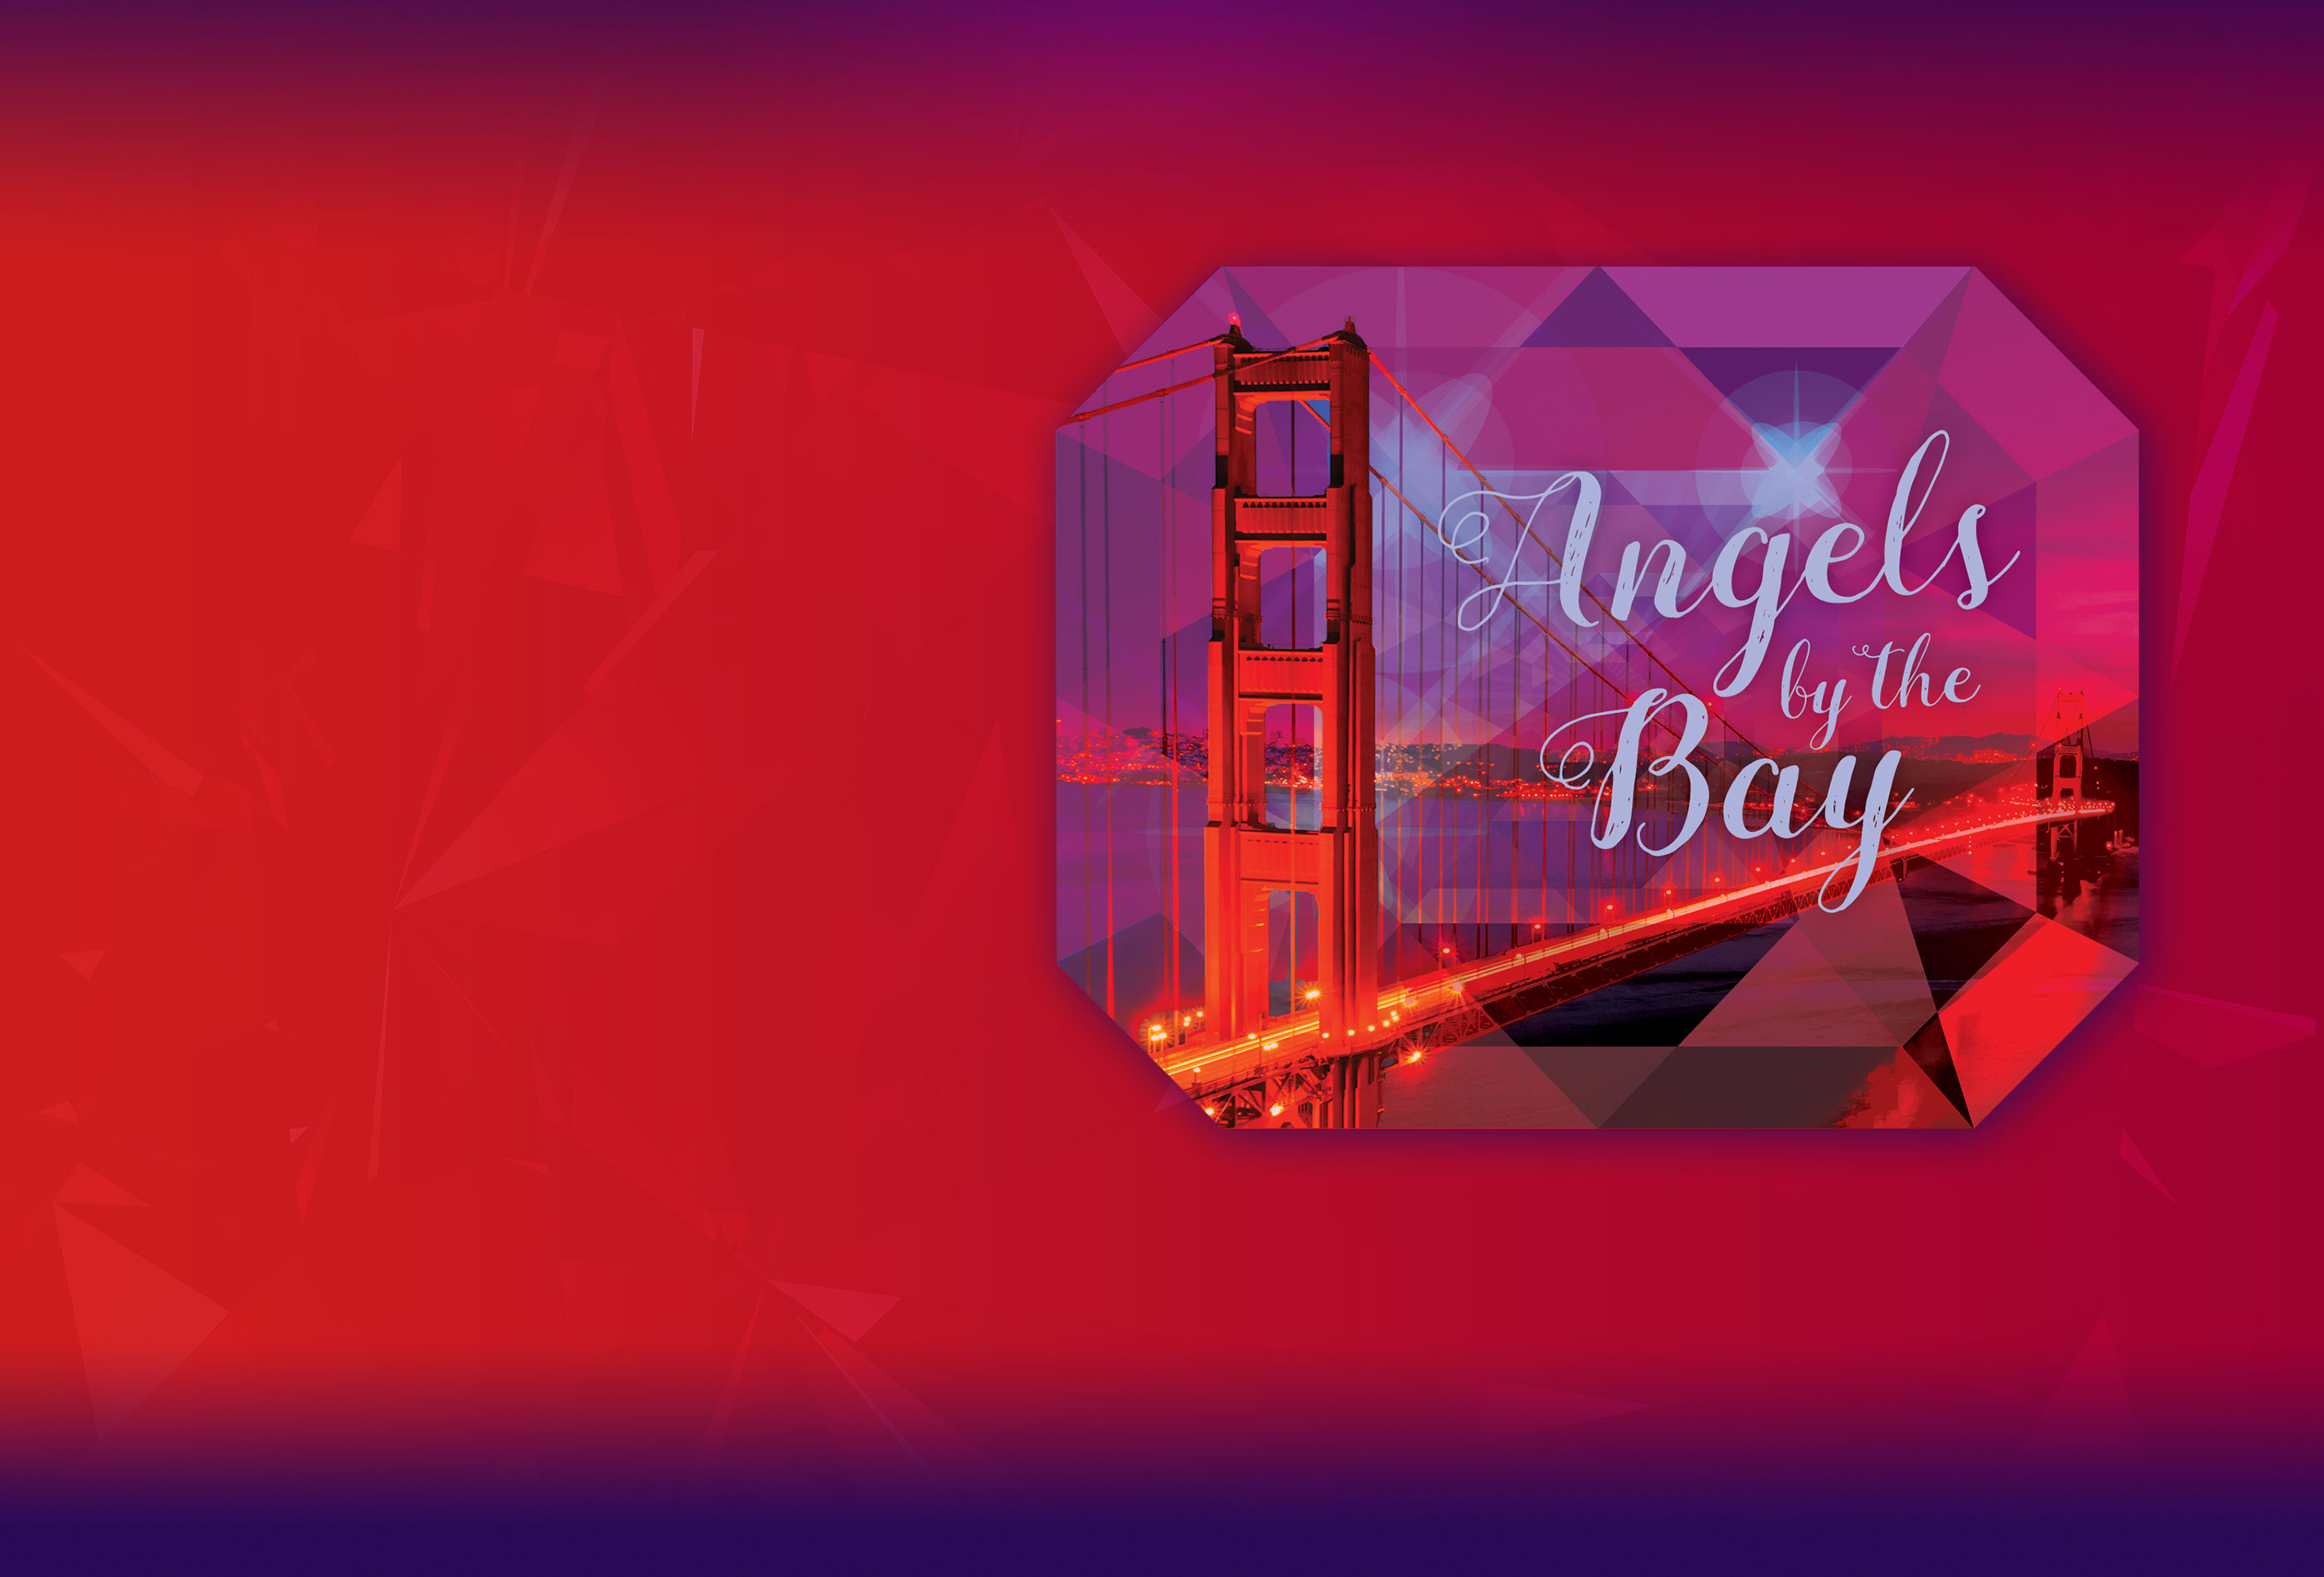 Graphic of the 2019 Angels by the Bay logo and the Golden Gate Bridge.